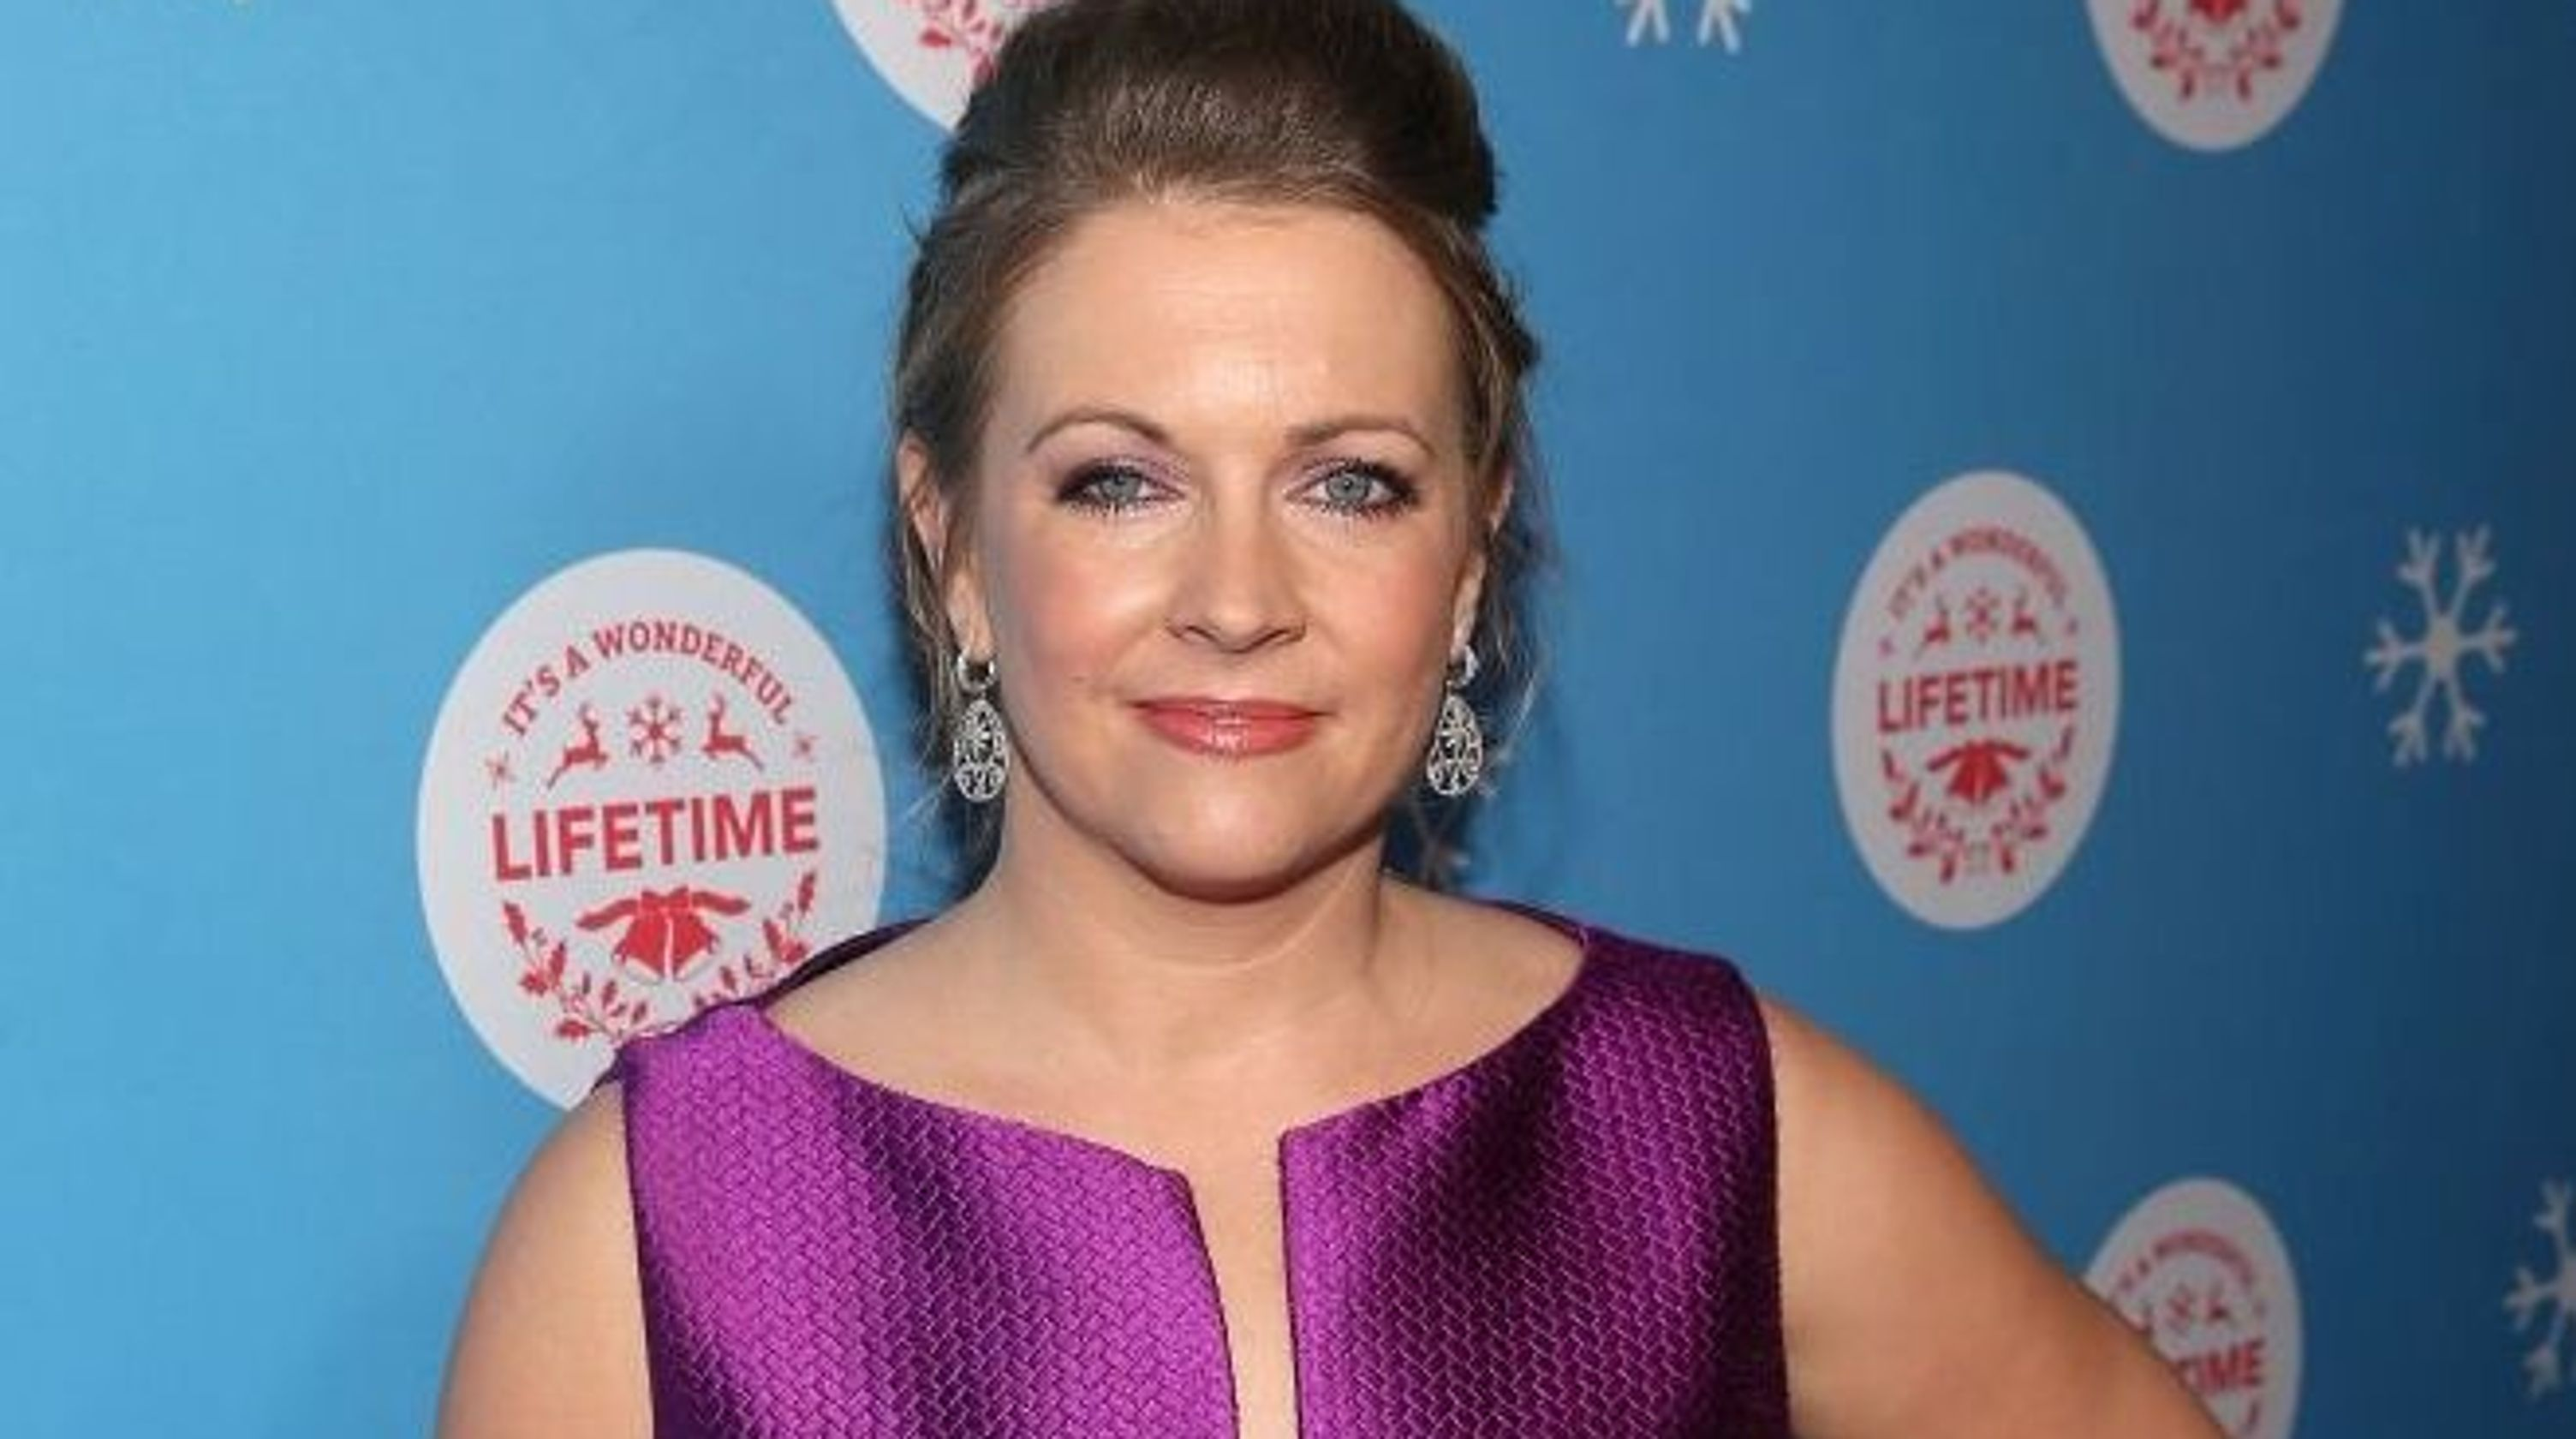 Melissa Joan Hart wrestled with faith, acceptance when son had question about Jewish friend